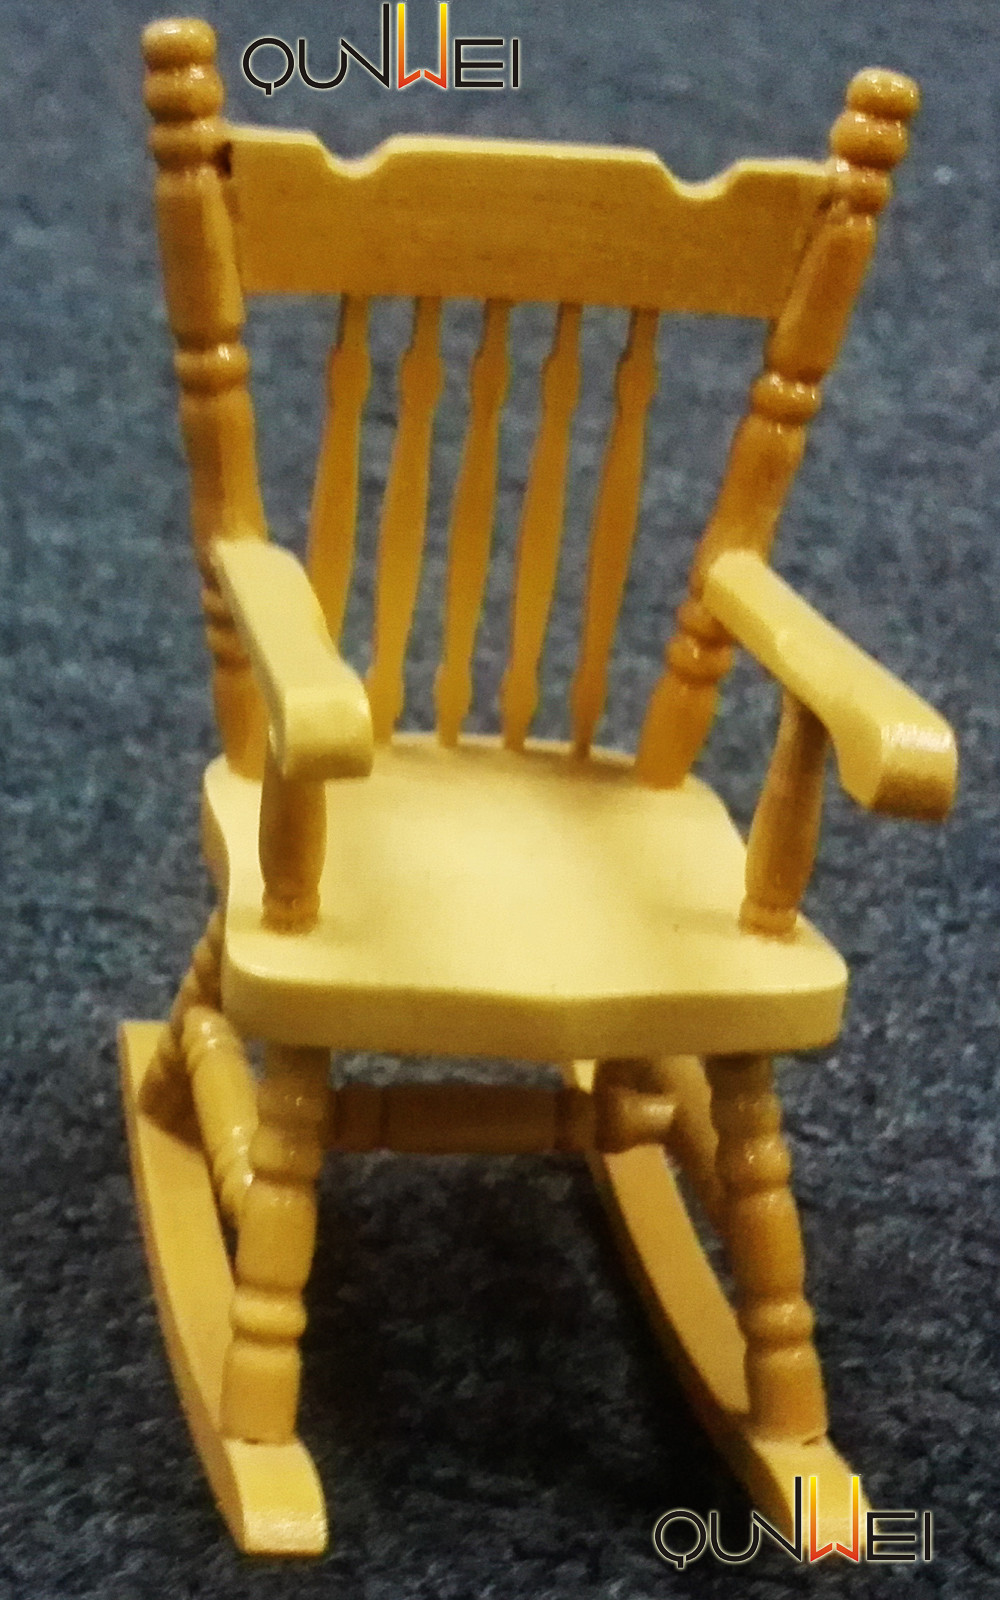 1 12 Scale Dollhouse Miniature Wooden Rocking Chairs Buy